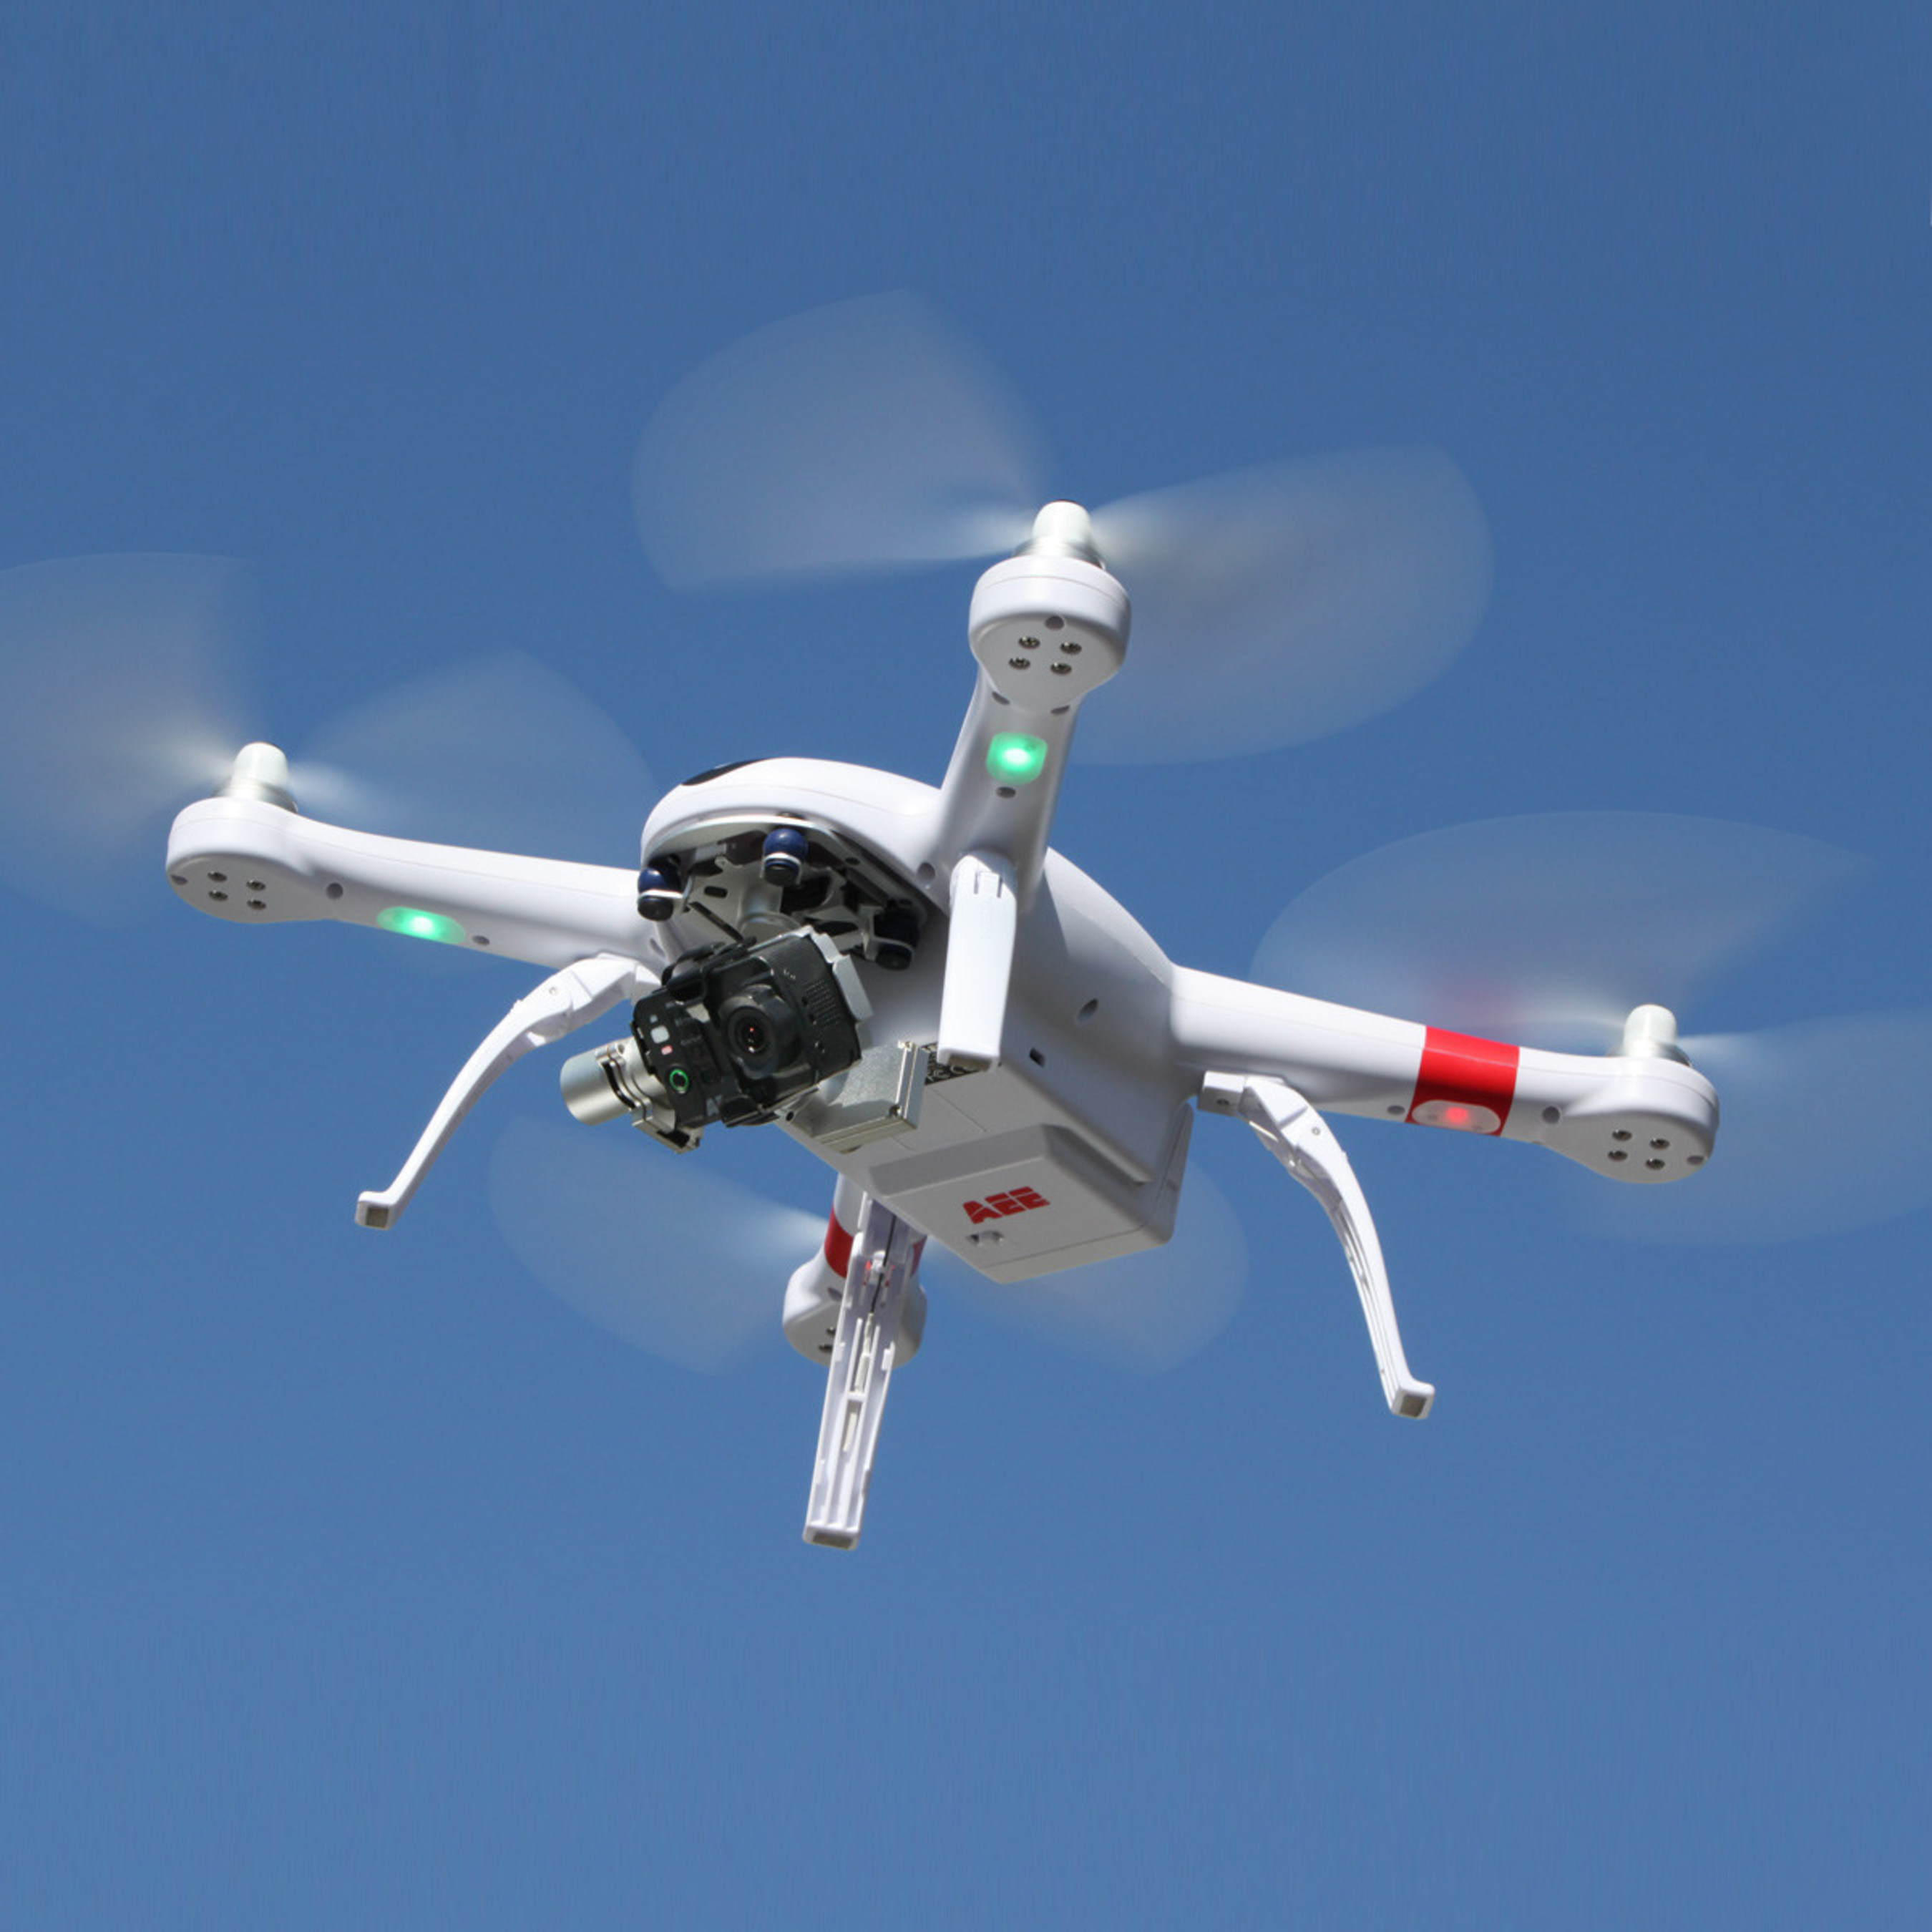 The AEE AP11 Pro drone features 3-axis gimbal and full HD.